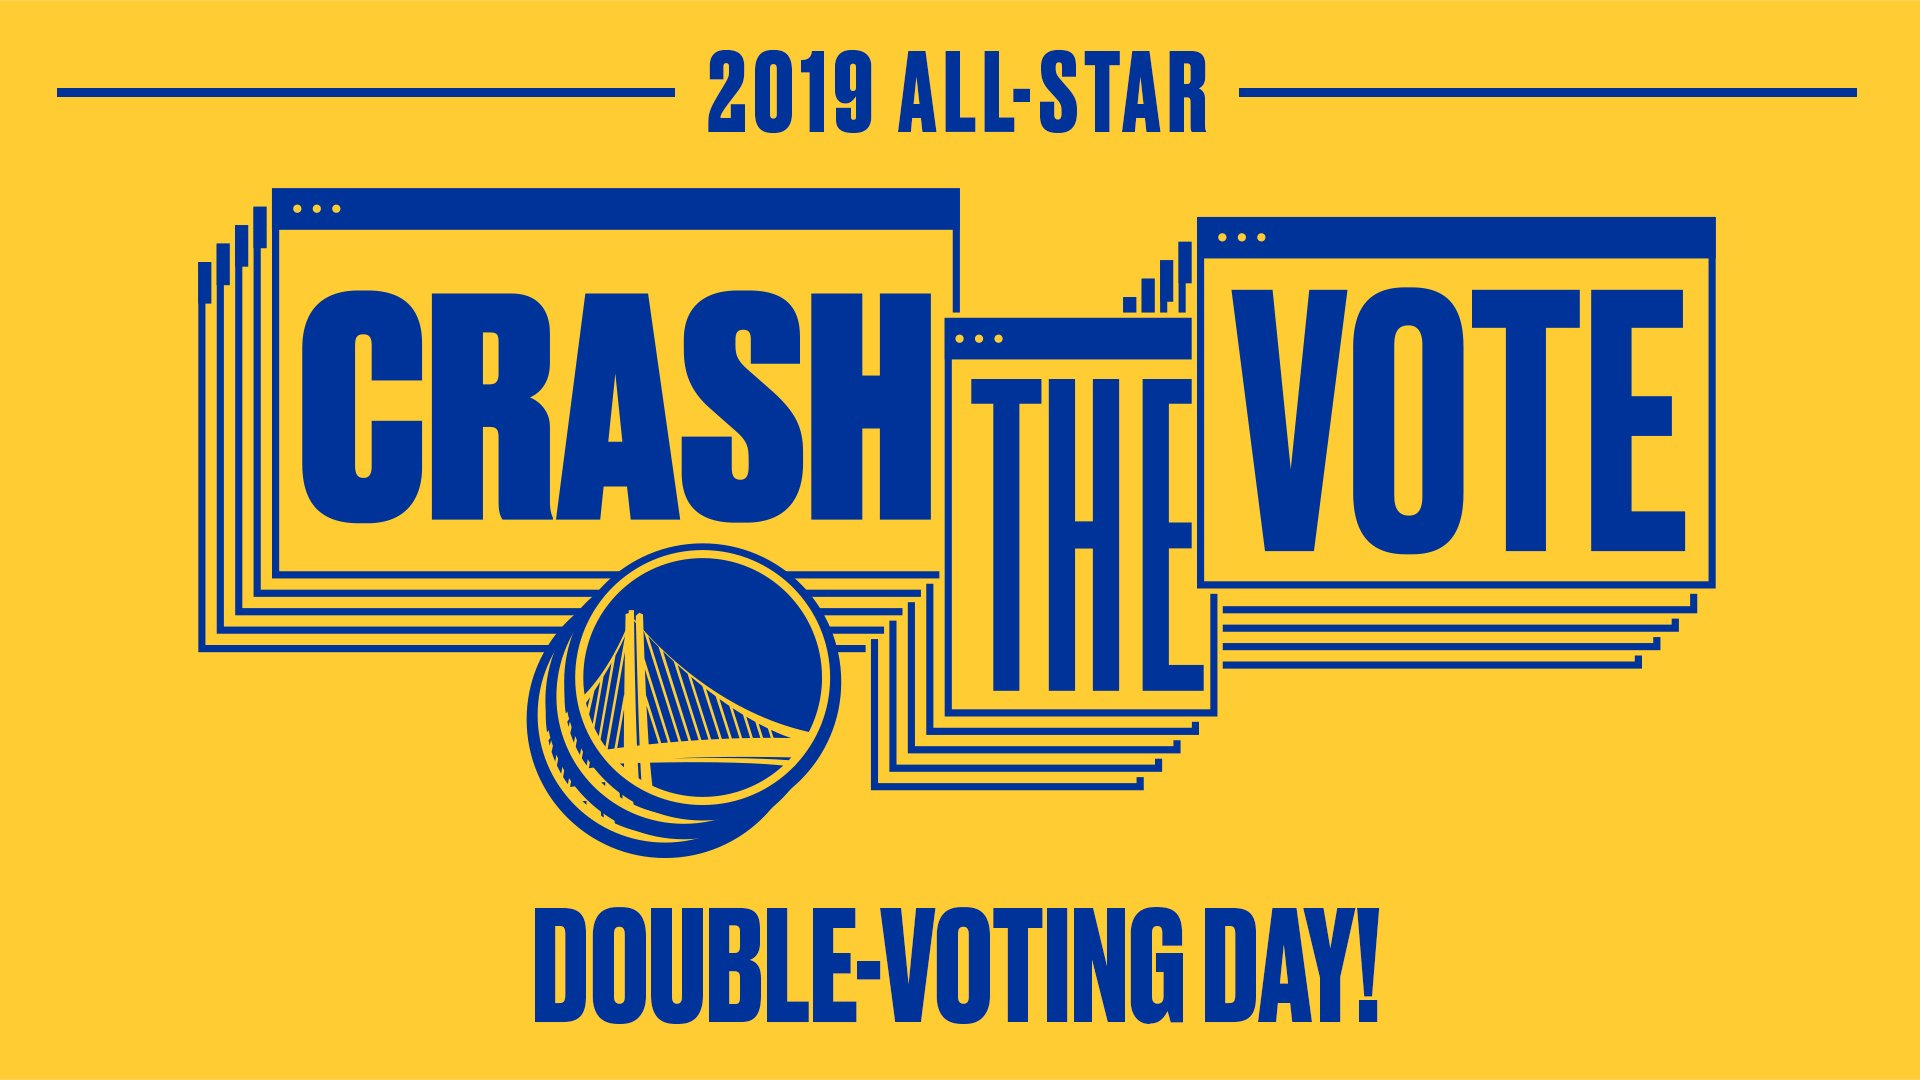 ��Your votes count as double starting RIGHT NOW ��  ��https://t.co/21BdiGgKcI  ��https://t.co/zbSdvRbVzz https://t.co/dn1omCXH80